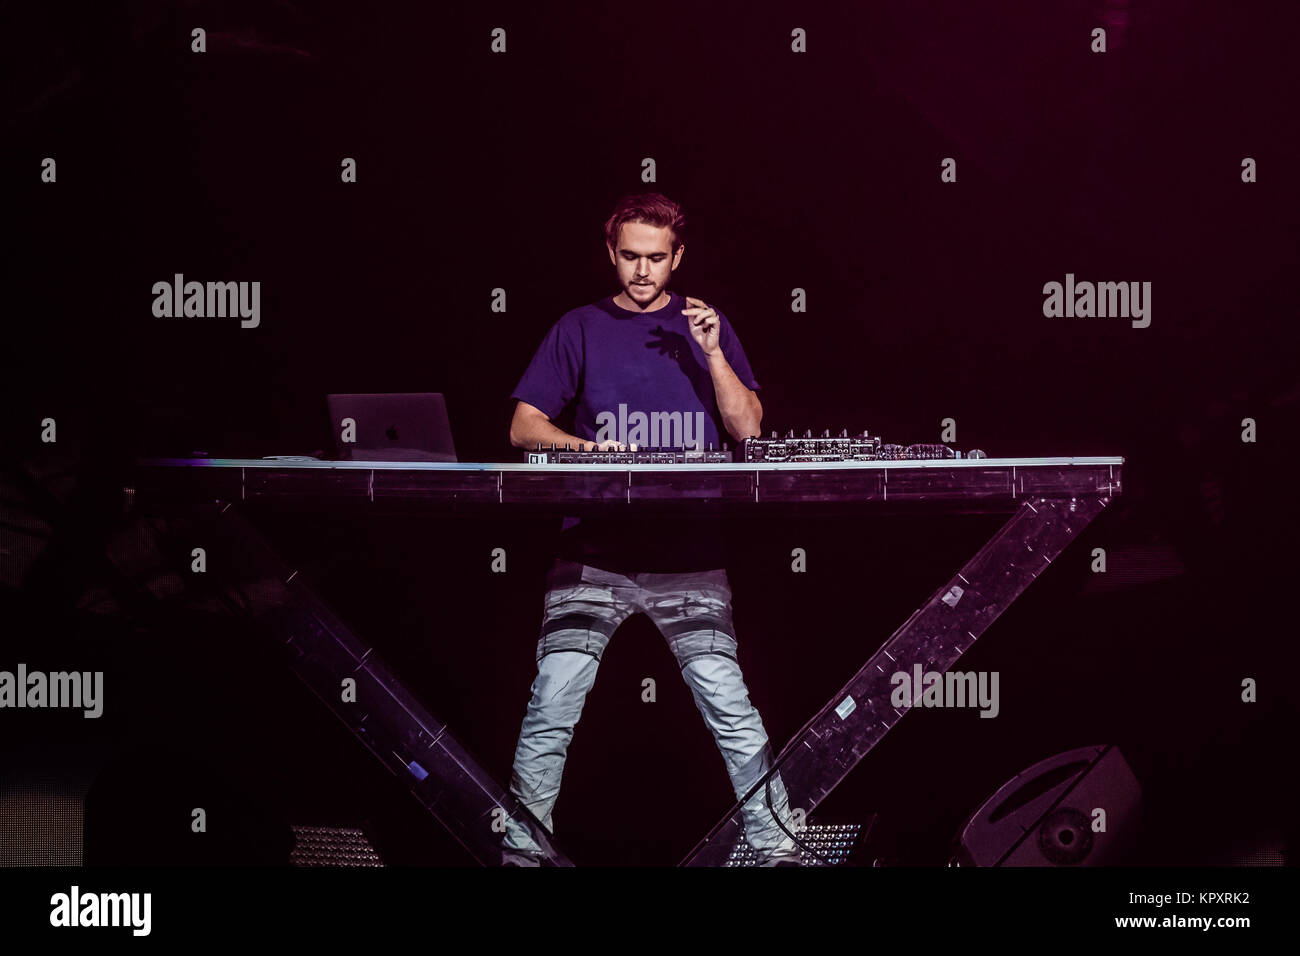 Tampa, USA. 16th Dec, 2017. Zedd performing at 93.3 FLZ's iHeartRadio Jingle Ball on December 16, 2017 at Amalie - Stock Image